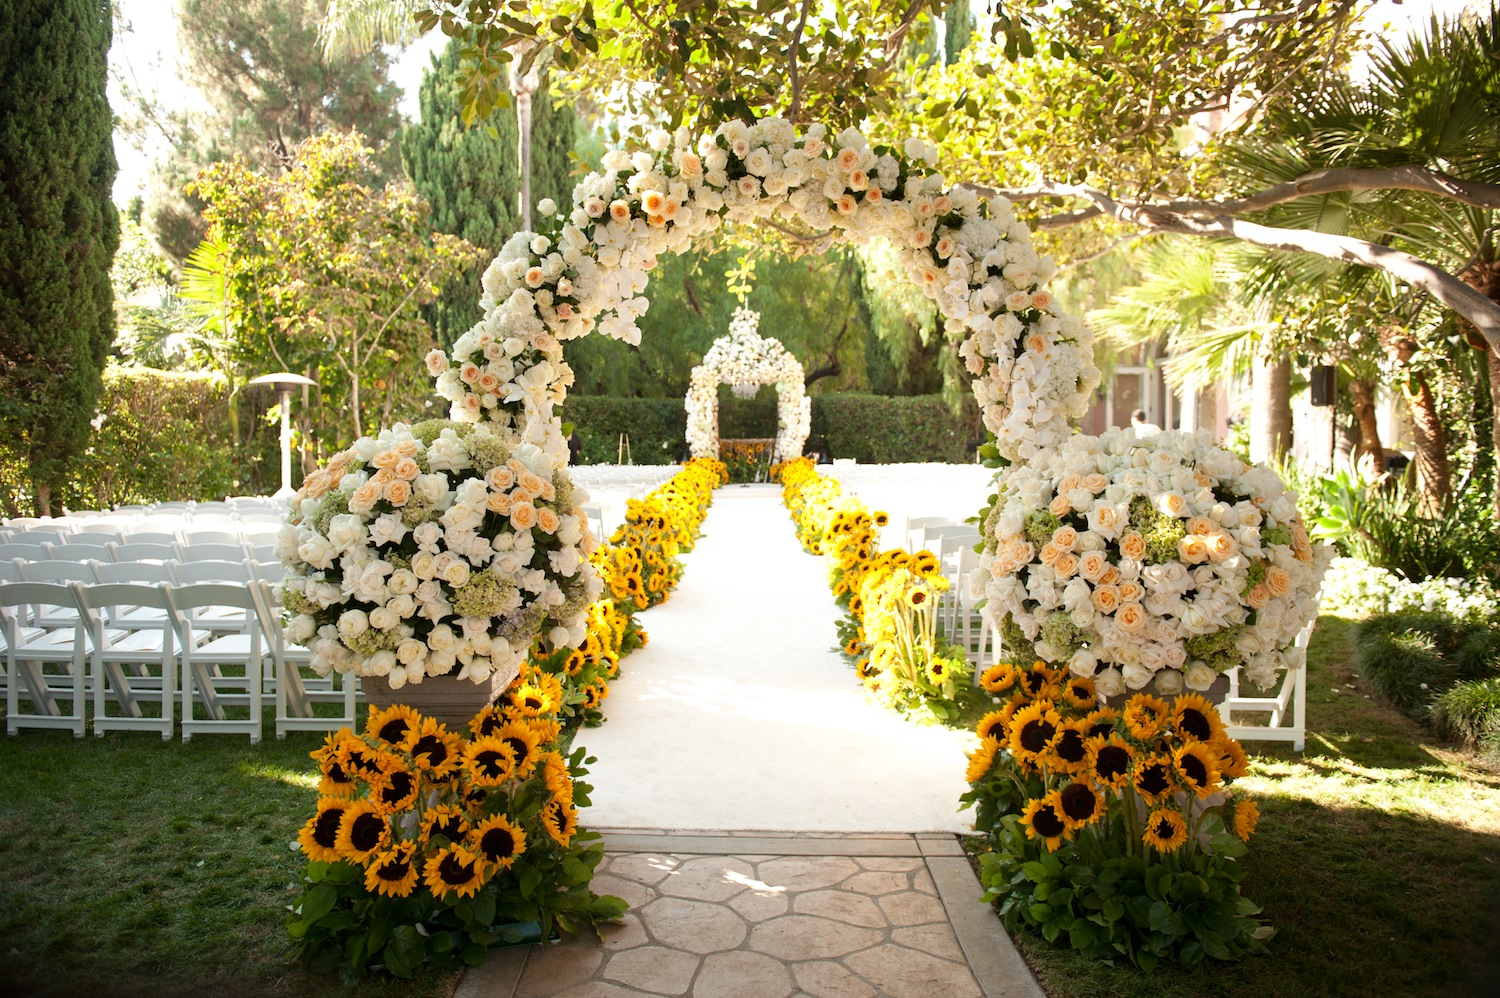 Garden Wedding Ceremony Decor (View 11 of 15)